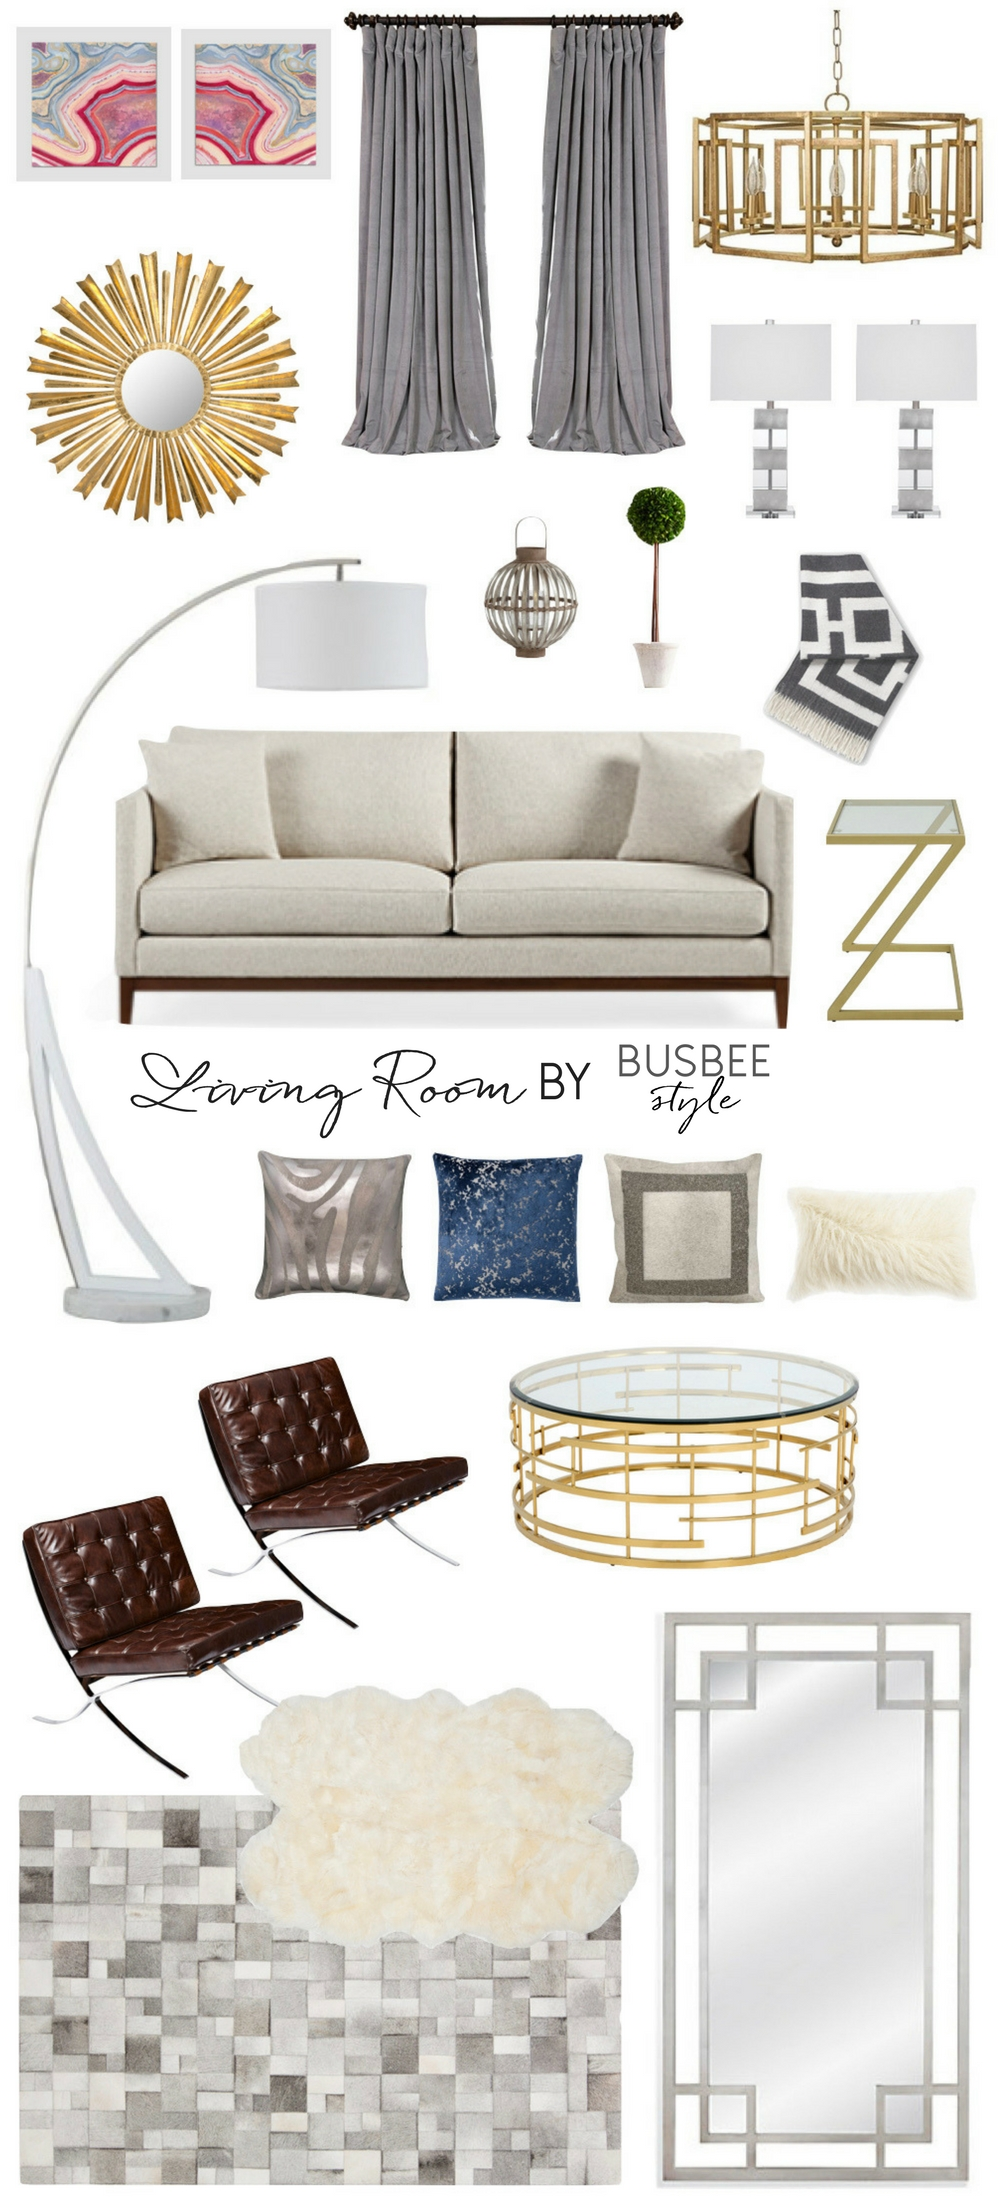 Living Room decor inspiration, by lifestyle blogger erin busbee of busbee style, including pieces from west elm, gilt, arhaus, pottery barn, mayfair, amazon